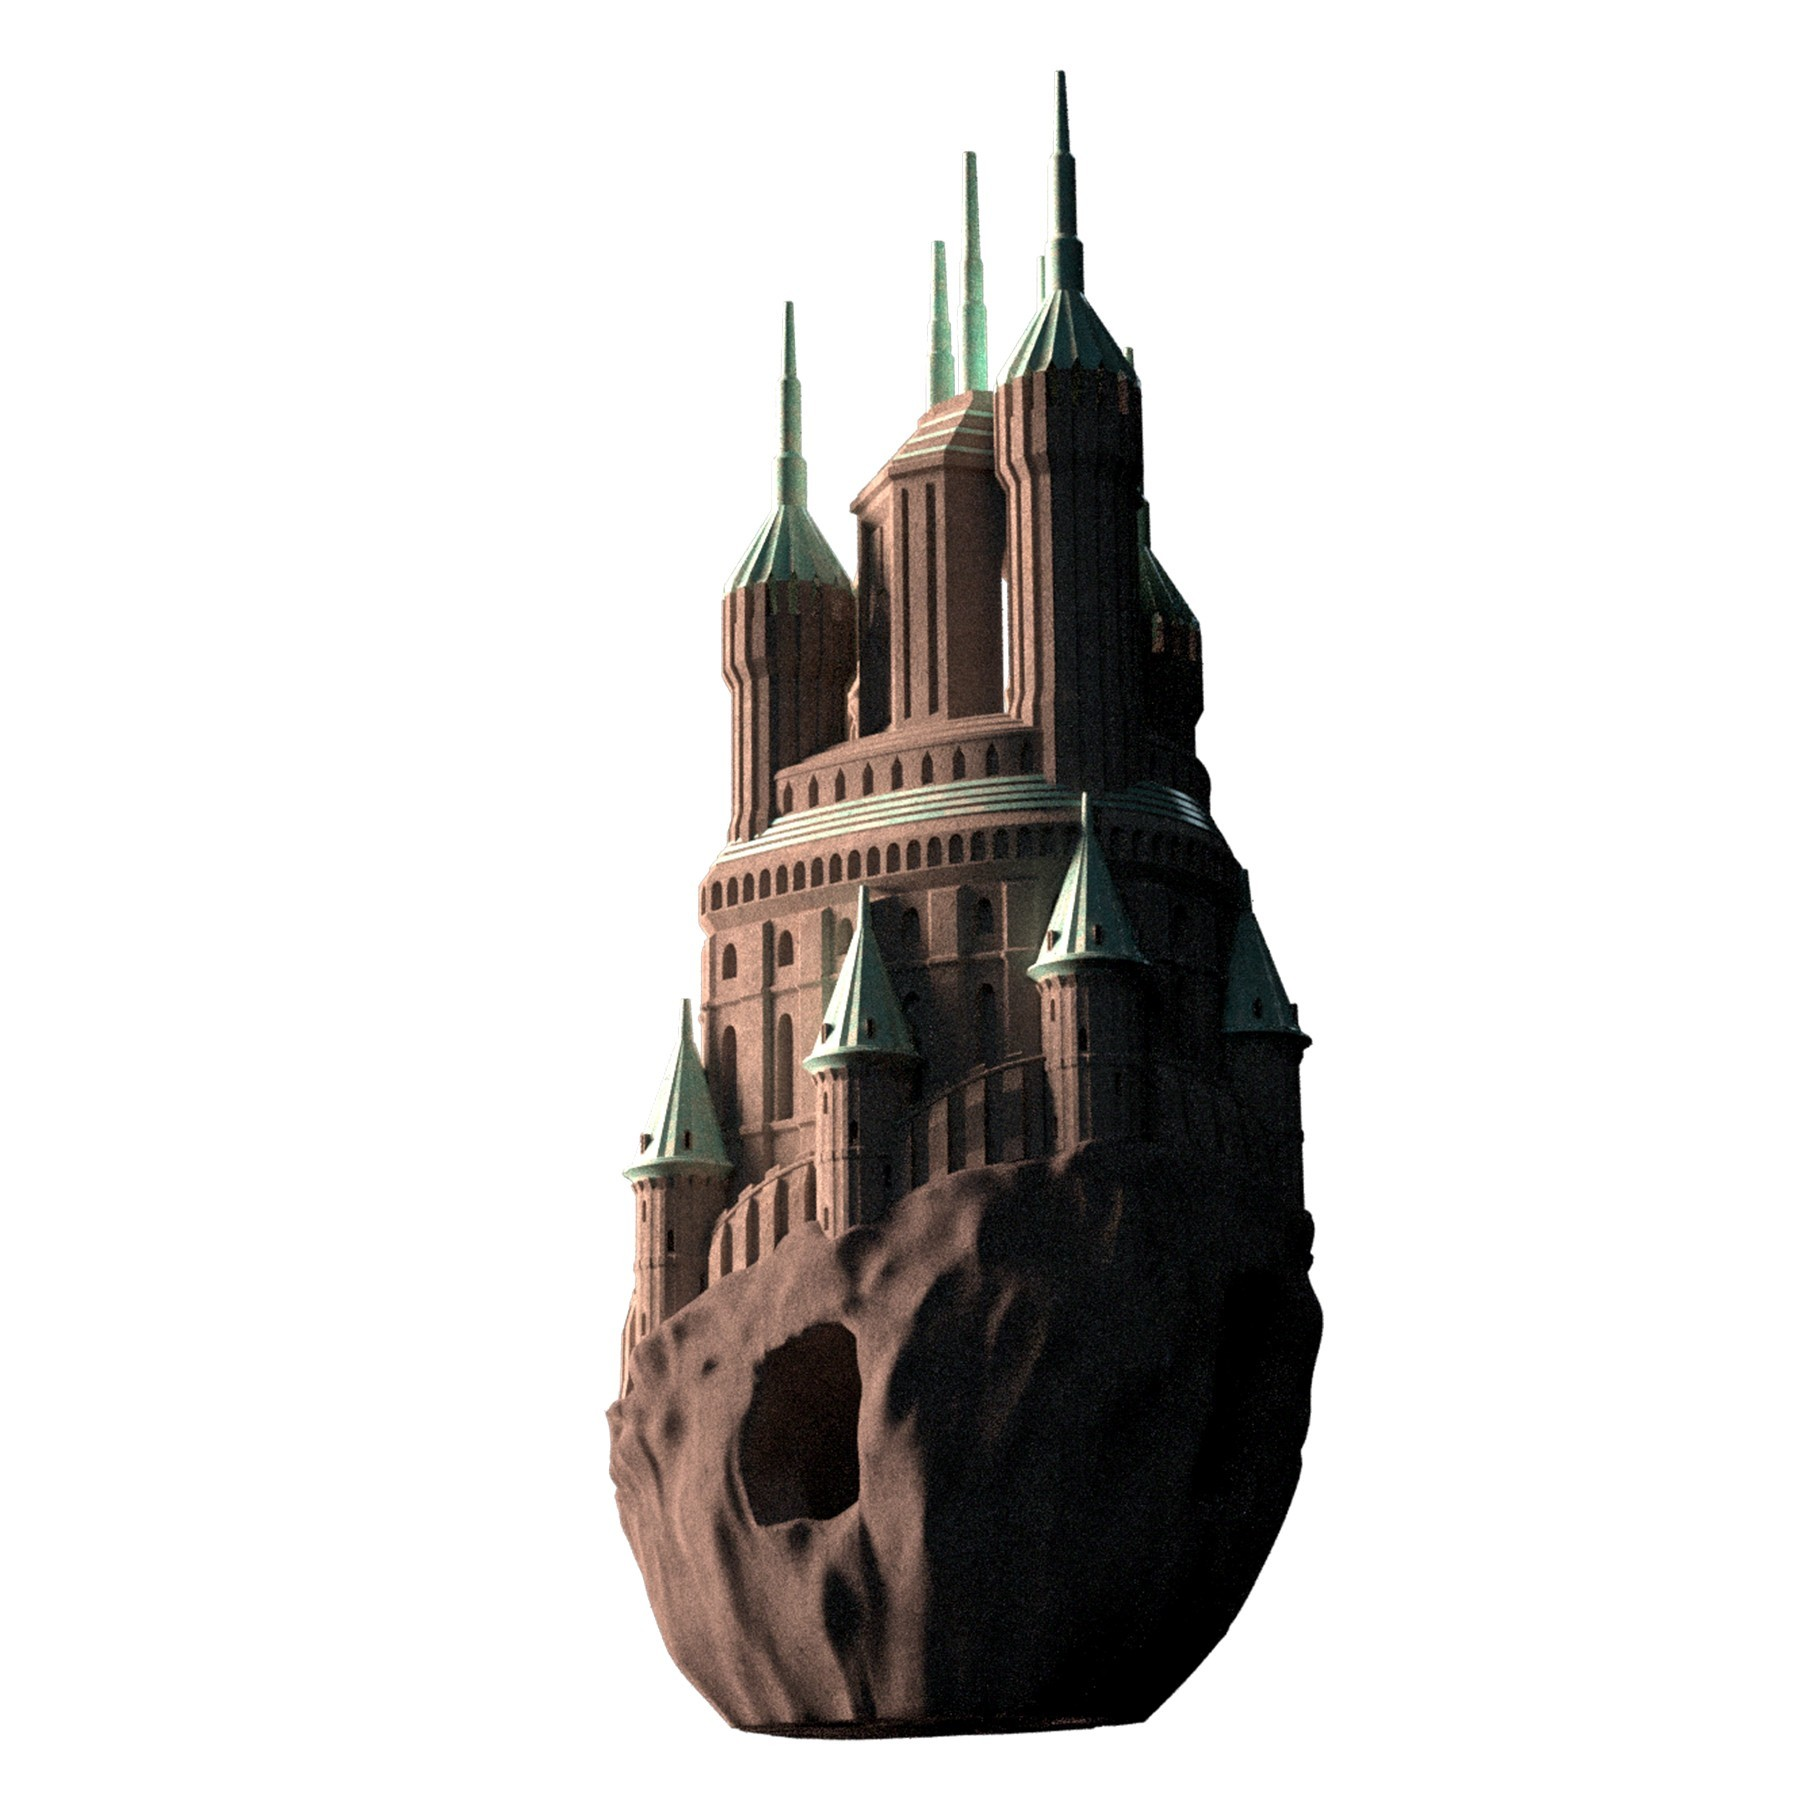 14.jpg Download OBJ file COASTAL FORTRESS • 3D printable model, tolgaaxu